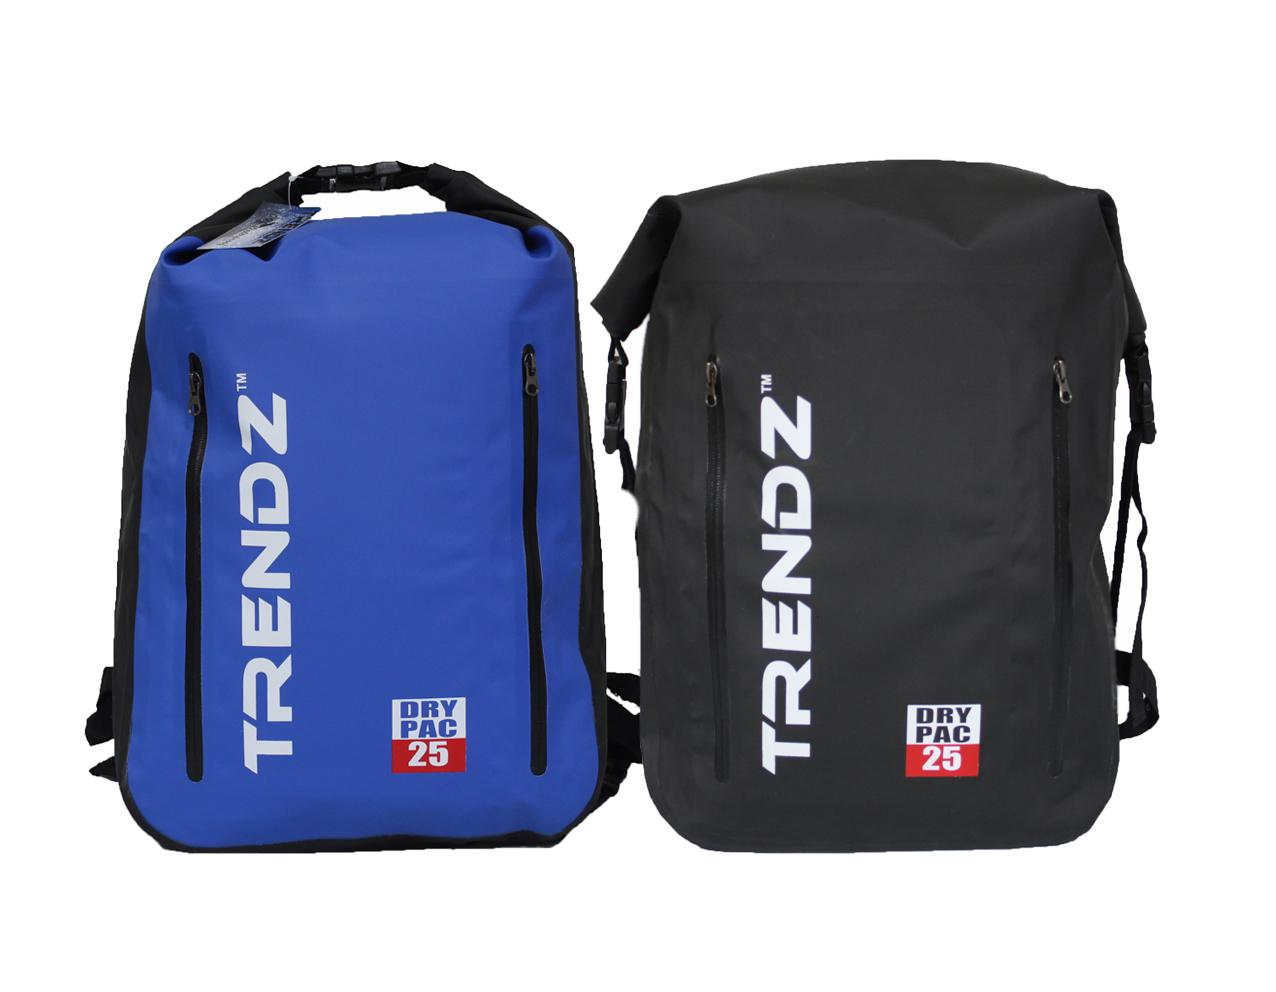 4eb5ae453b Waterproof Backpack Malaysia - Crazy Backpacks